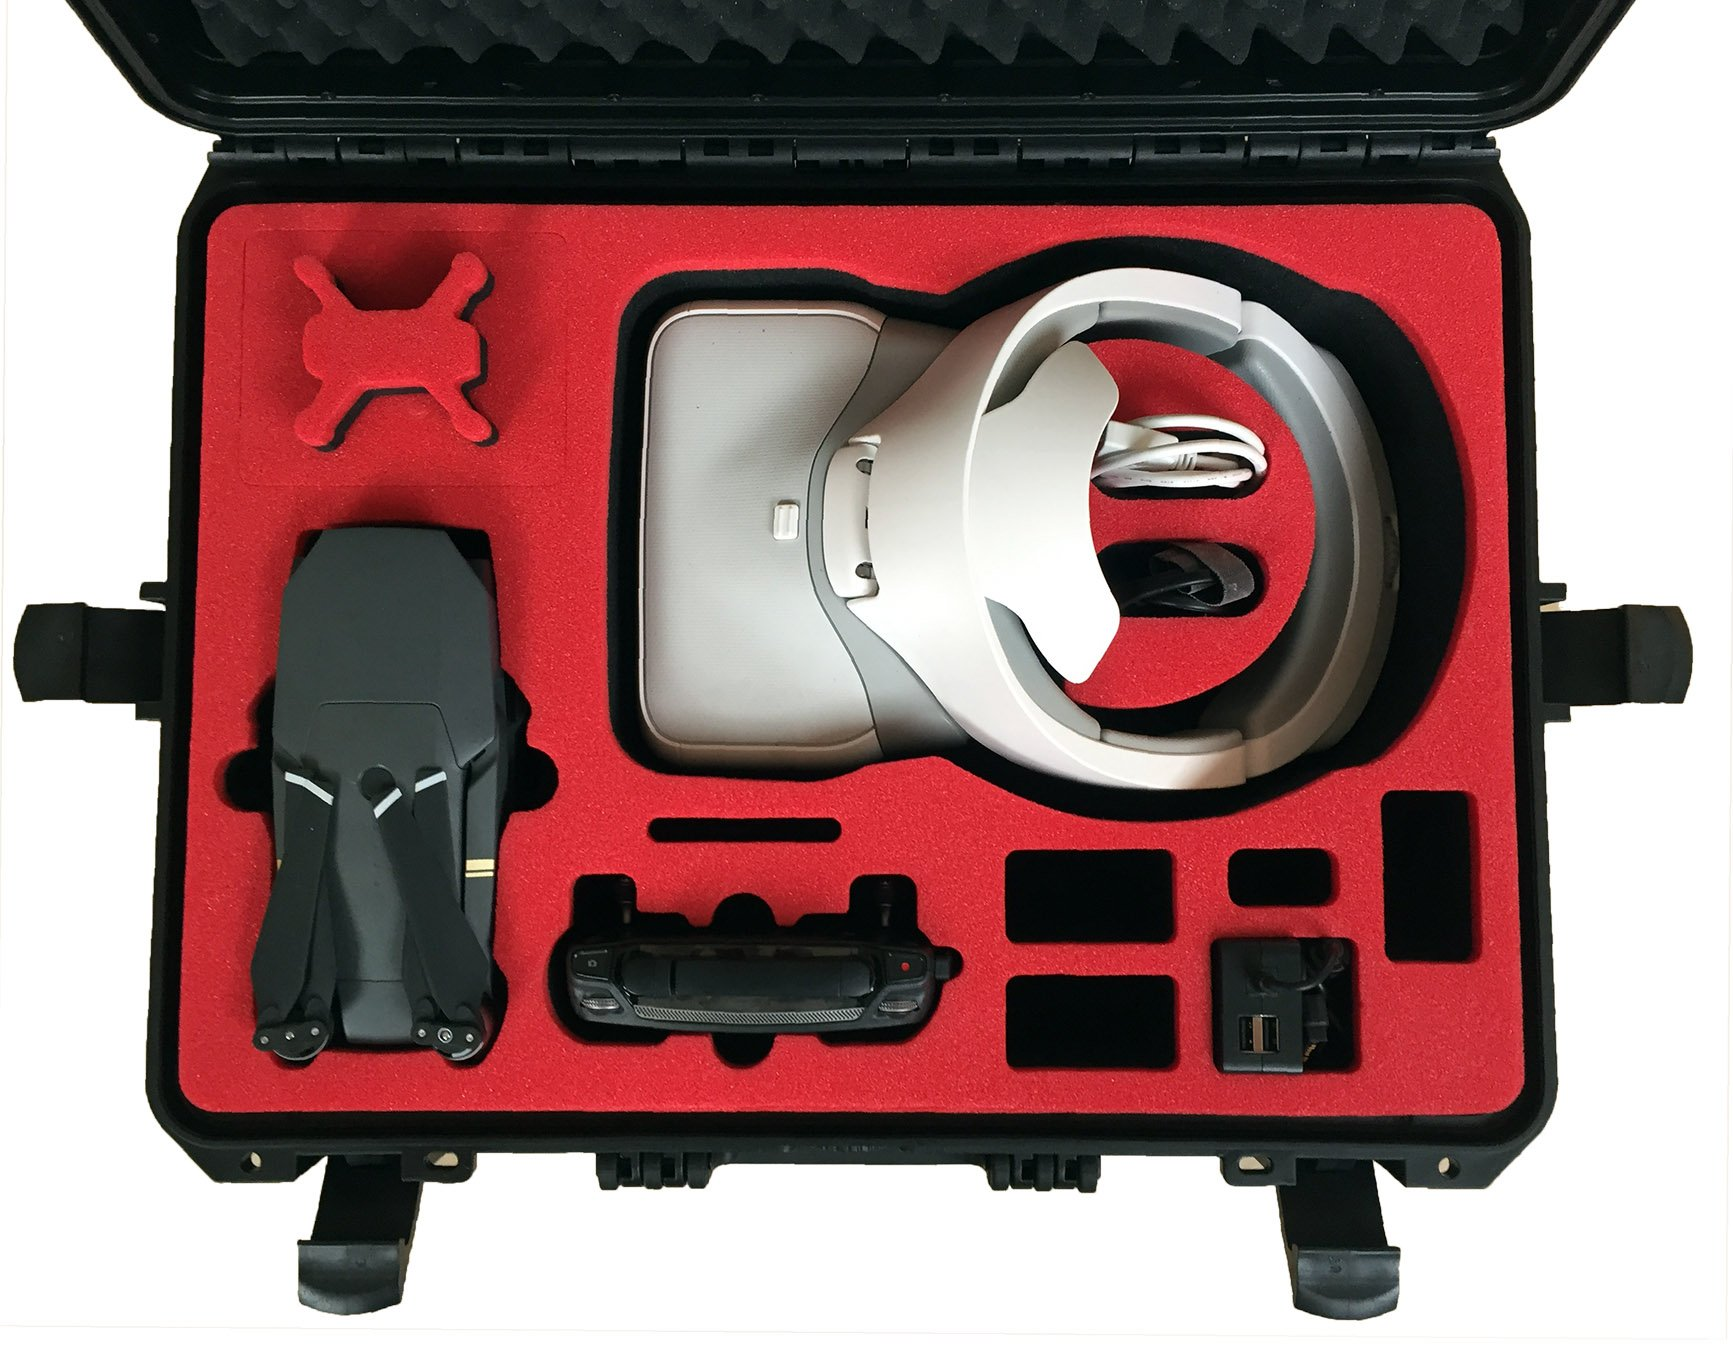 Professional Carrying Case for DJI Goggles (also racing edition) and DJI Mavic Pro and Platinum - 100% Water and dust proofed - by MC-CASES by mc-cases (Image #2)